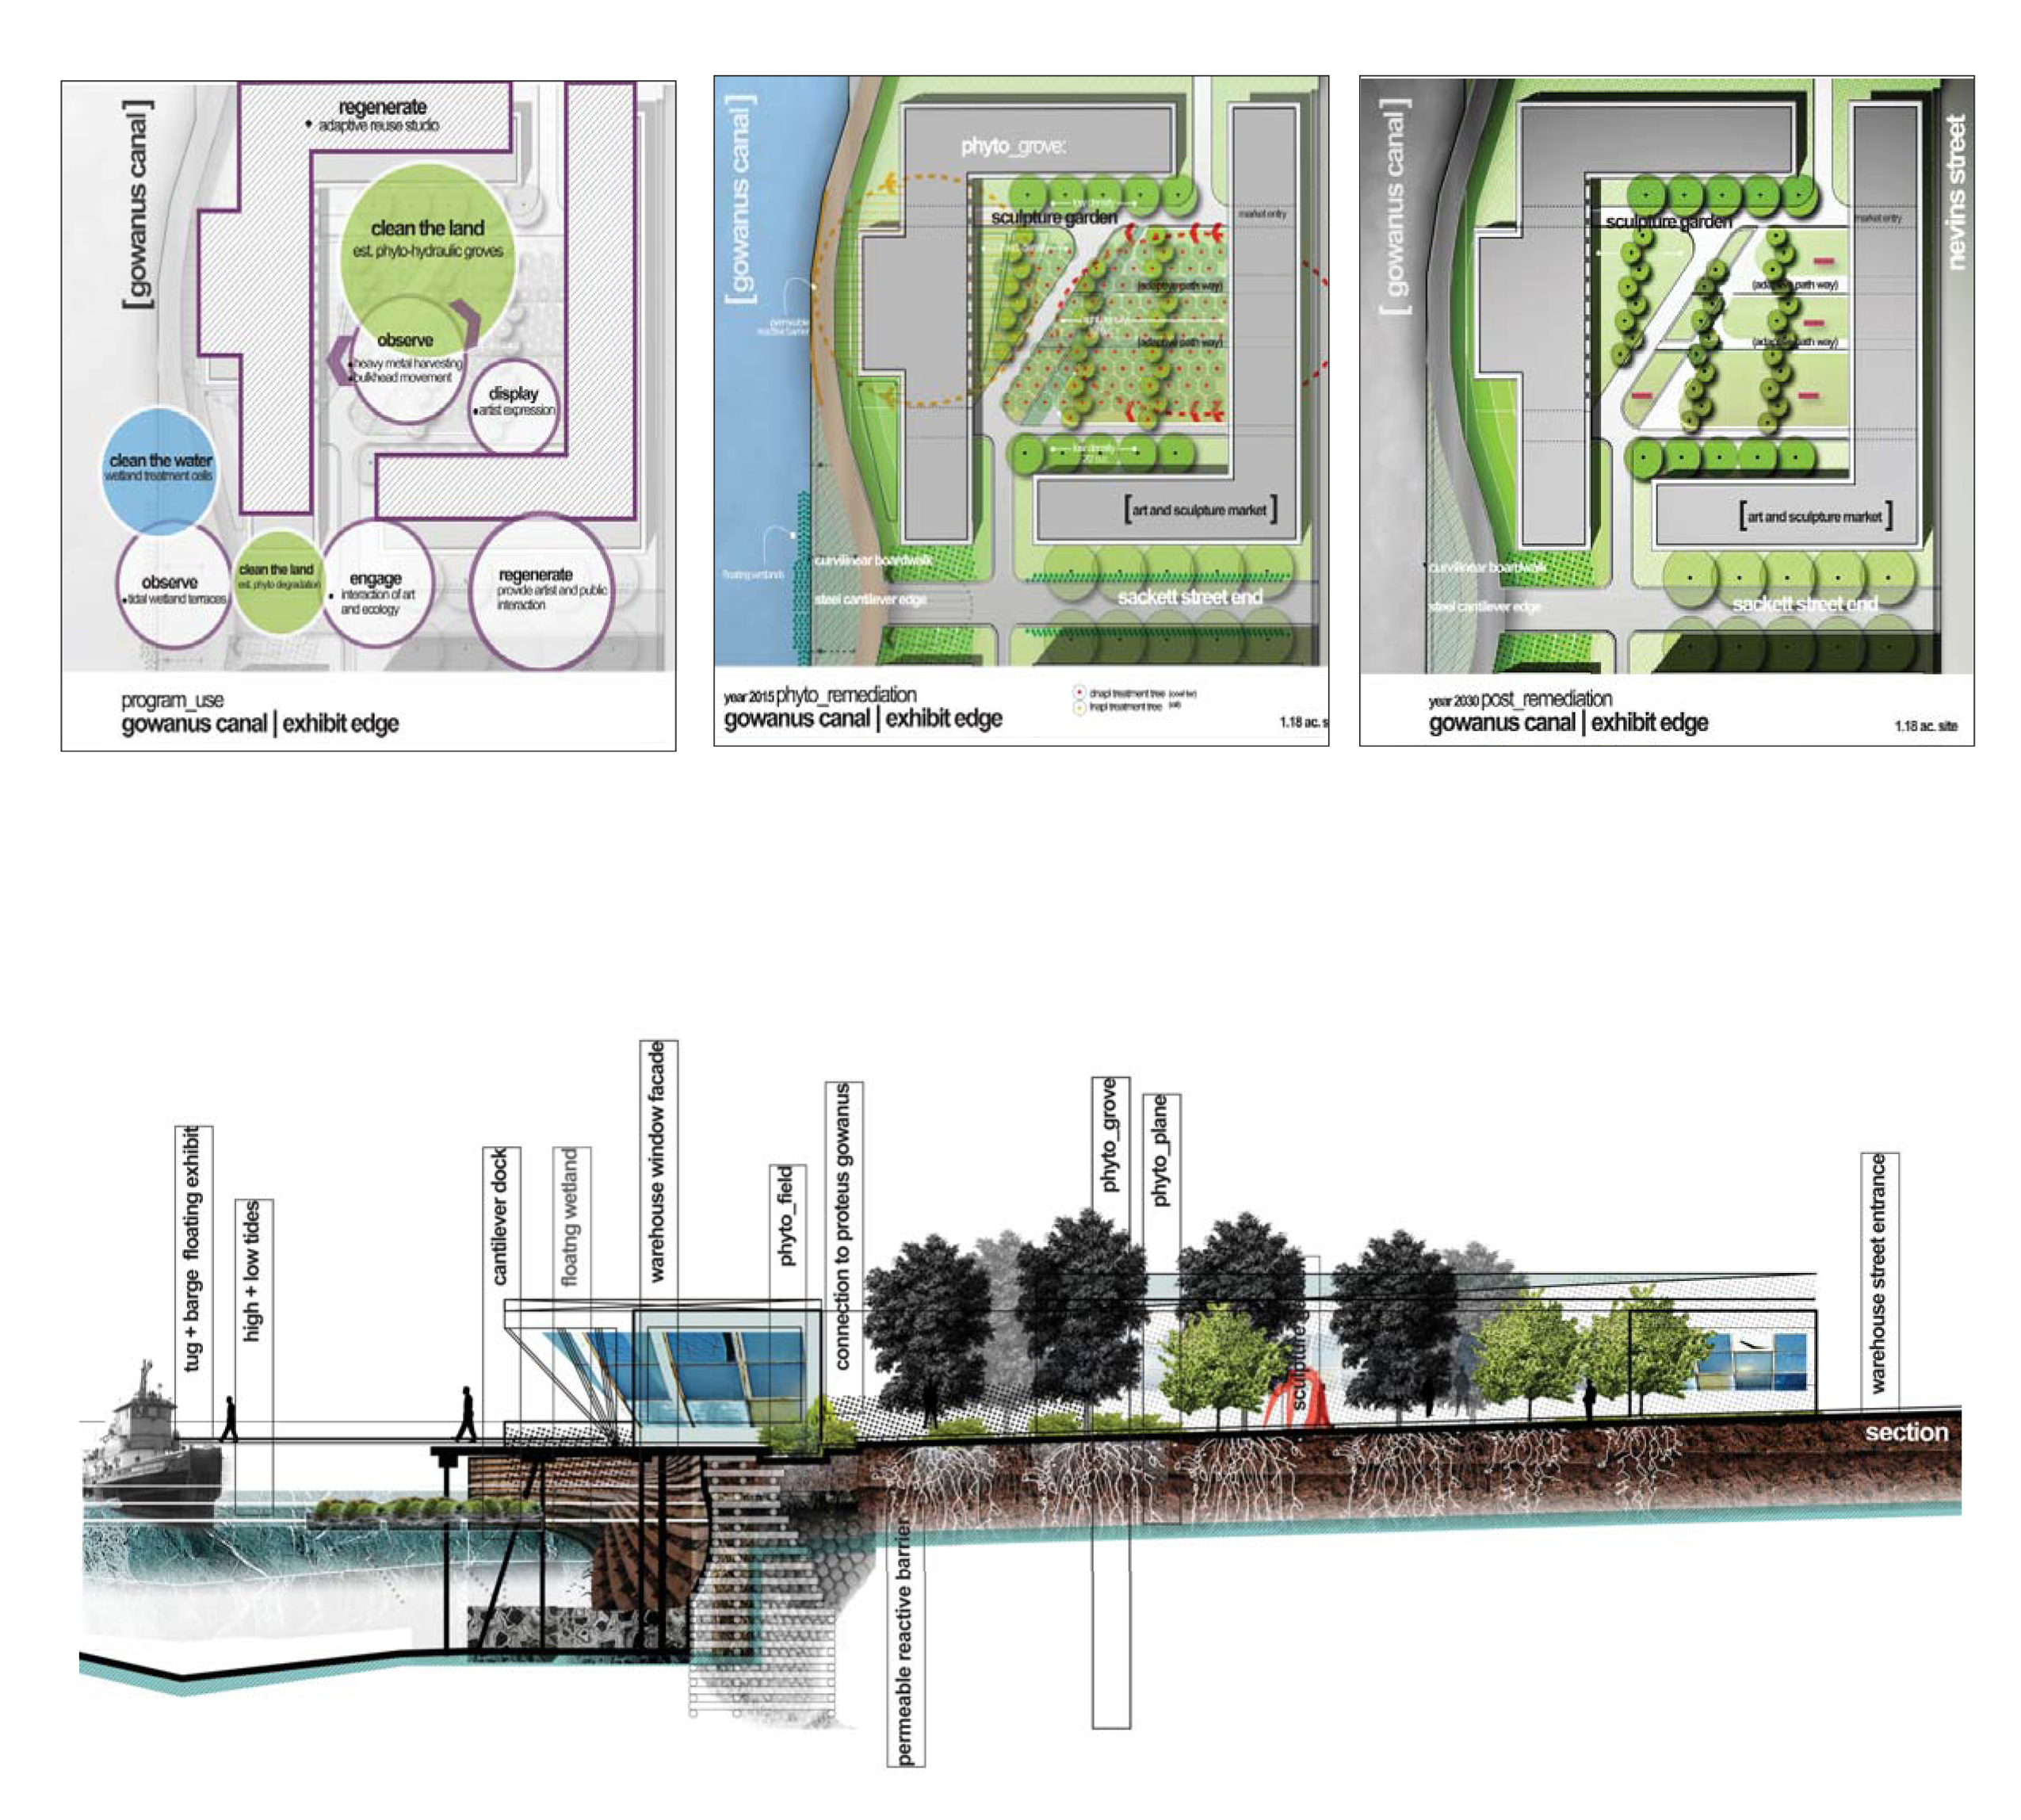 Asla 2011 Student Awards Fixture Remediation Of The